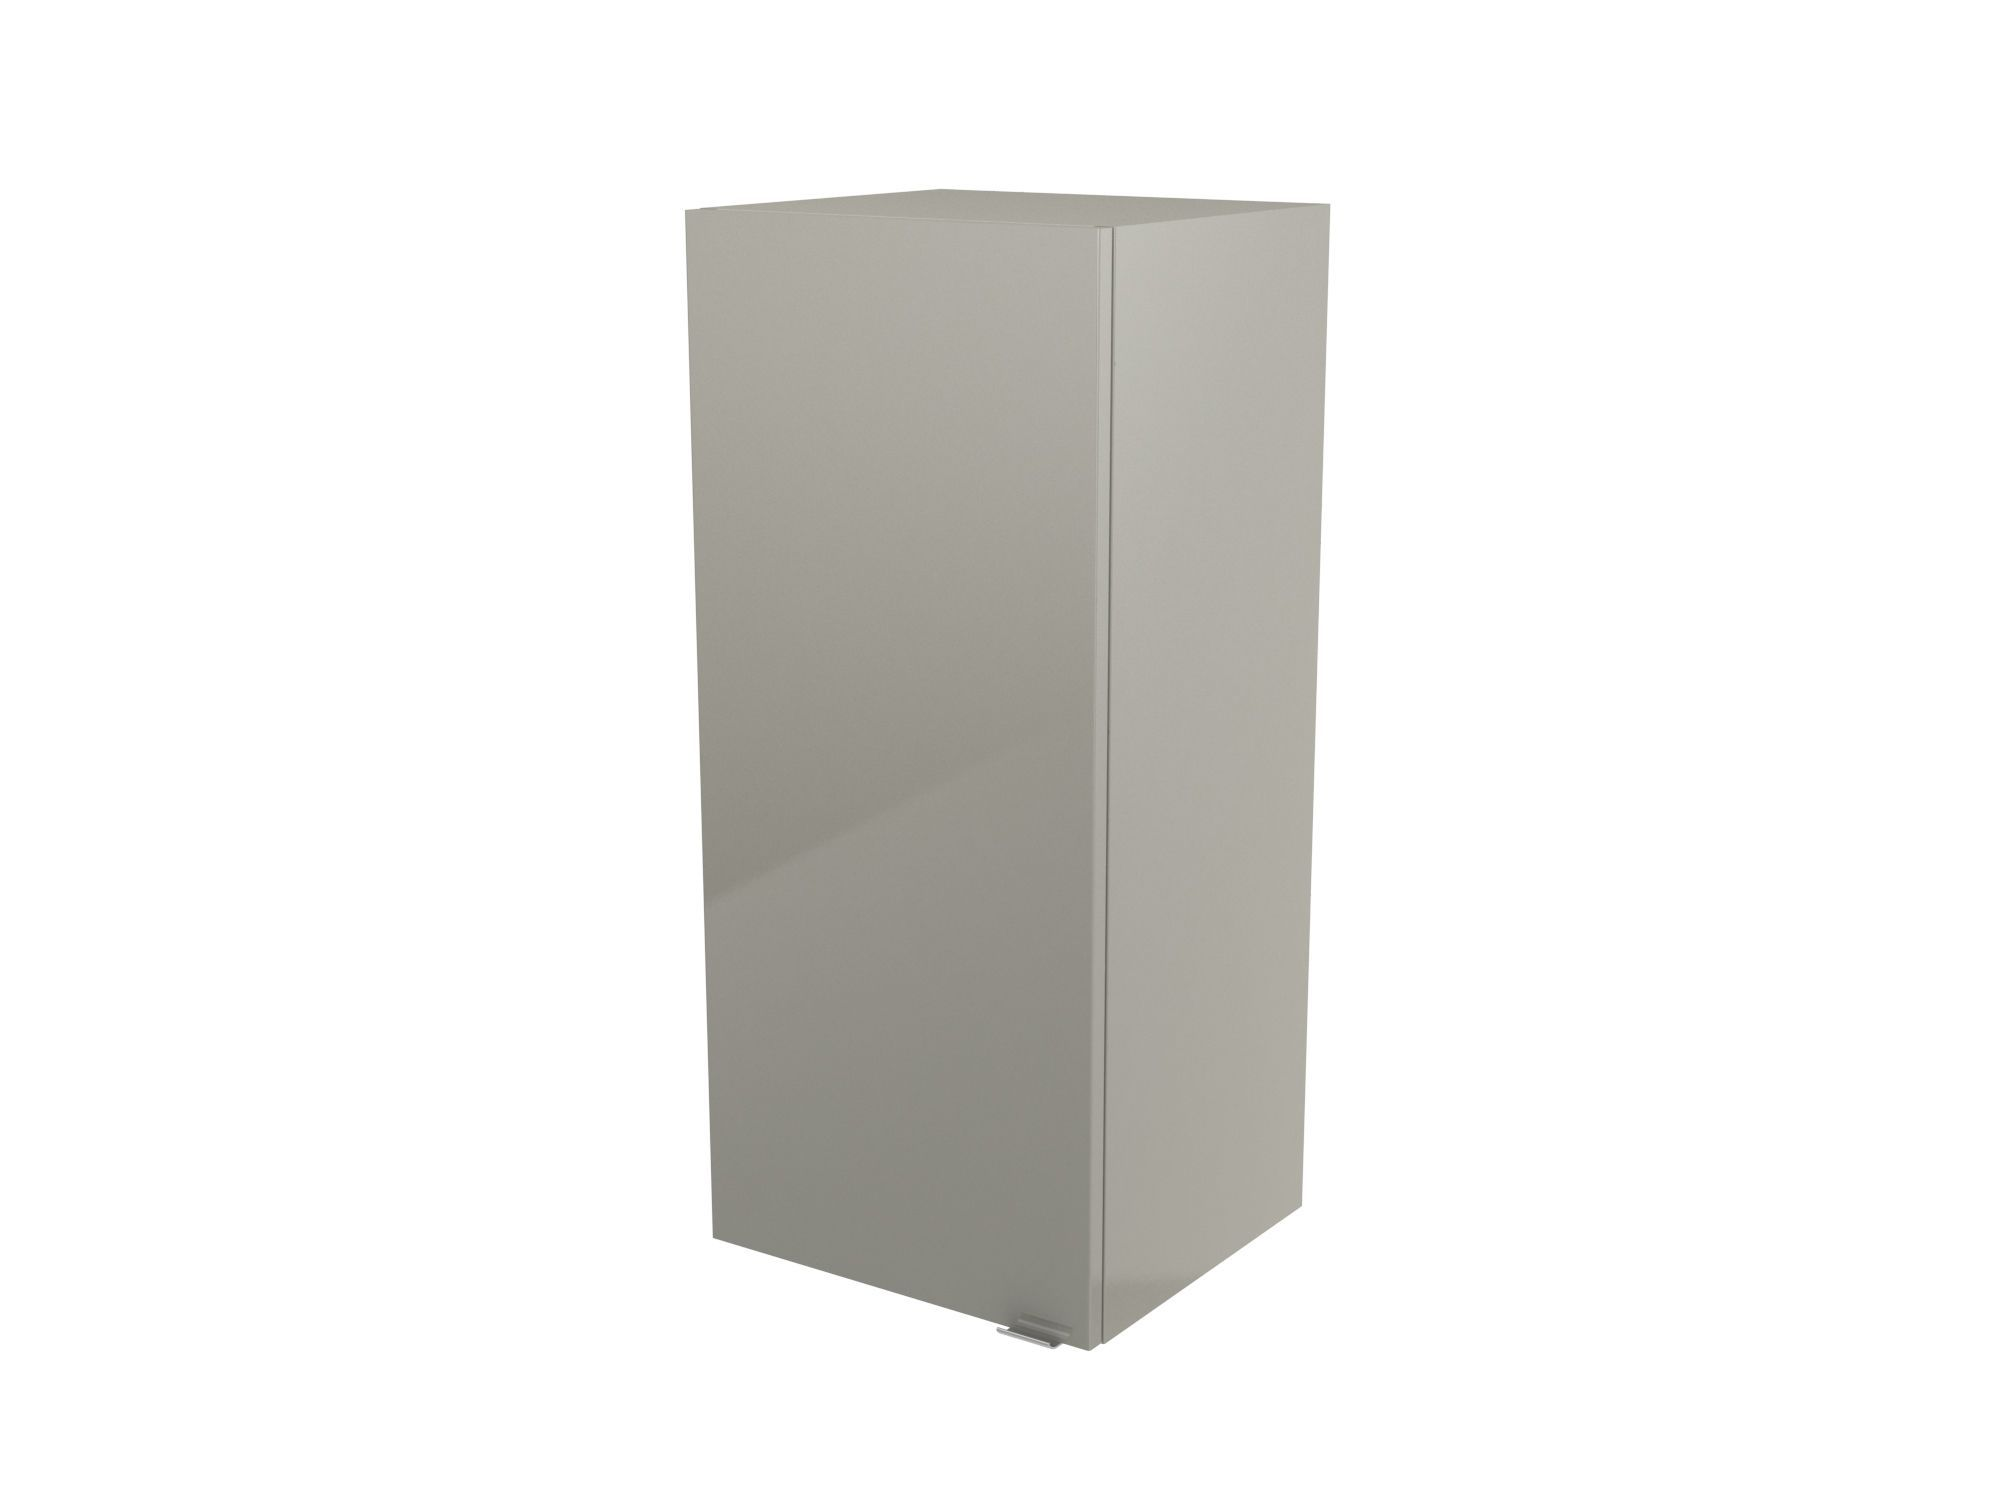 Cooke & Lewis Imandra Gloss Taupe Deep Wall Cabinet, (w)400mm